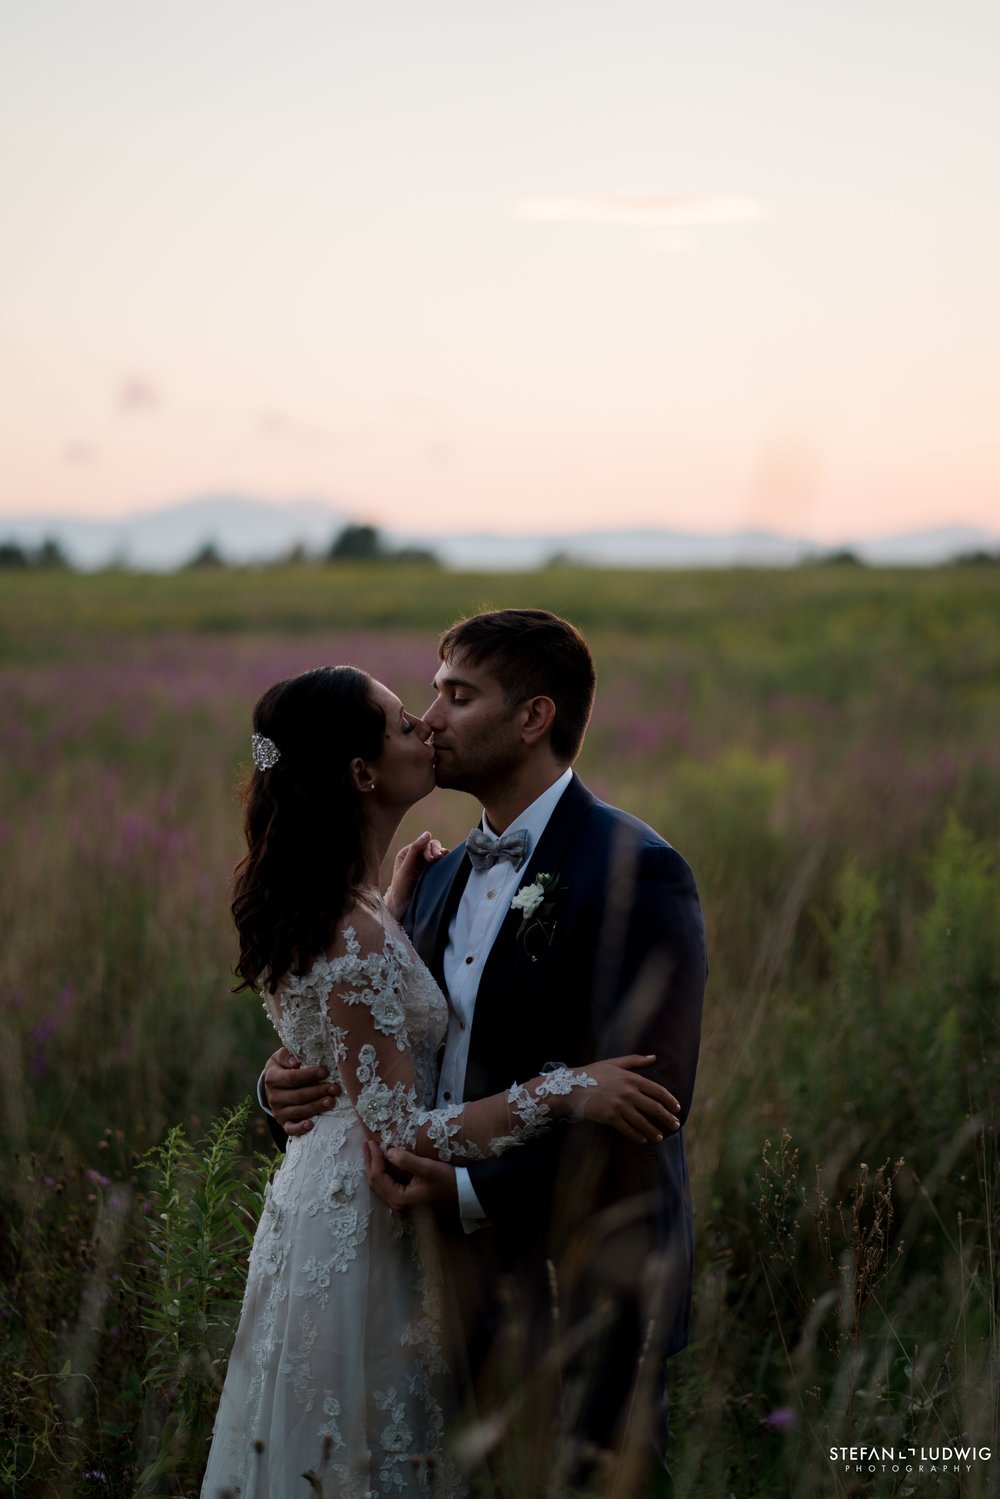 Heather and Andrew Wedding Photography ay Meadow Ridge Farm in Hudson NY by Stefan Ludwig Photography-119.jpg